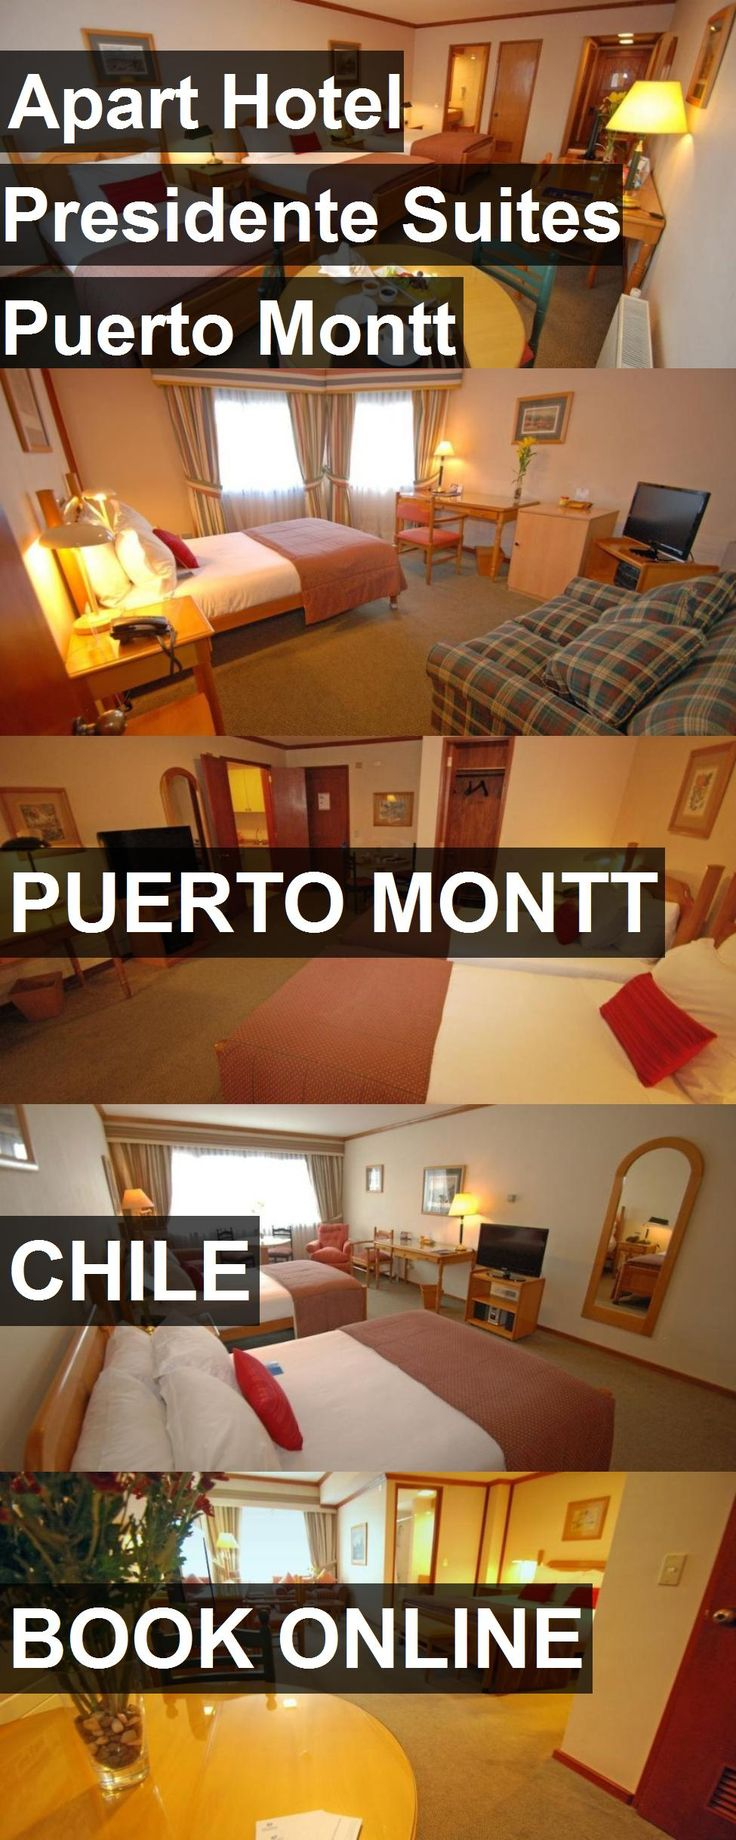 Hotel Apart Hotel Presidente Suites Puerto Montt in Puerto Montt, Chile. For more information, photos, reviews and best prices please follow the link. #Chile #PuertoMontt #ApartHotelPresidenteSuitesPuertoMontt #hotel #travel #vacation